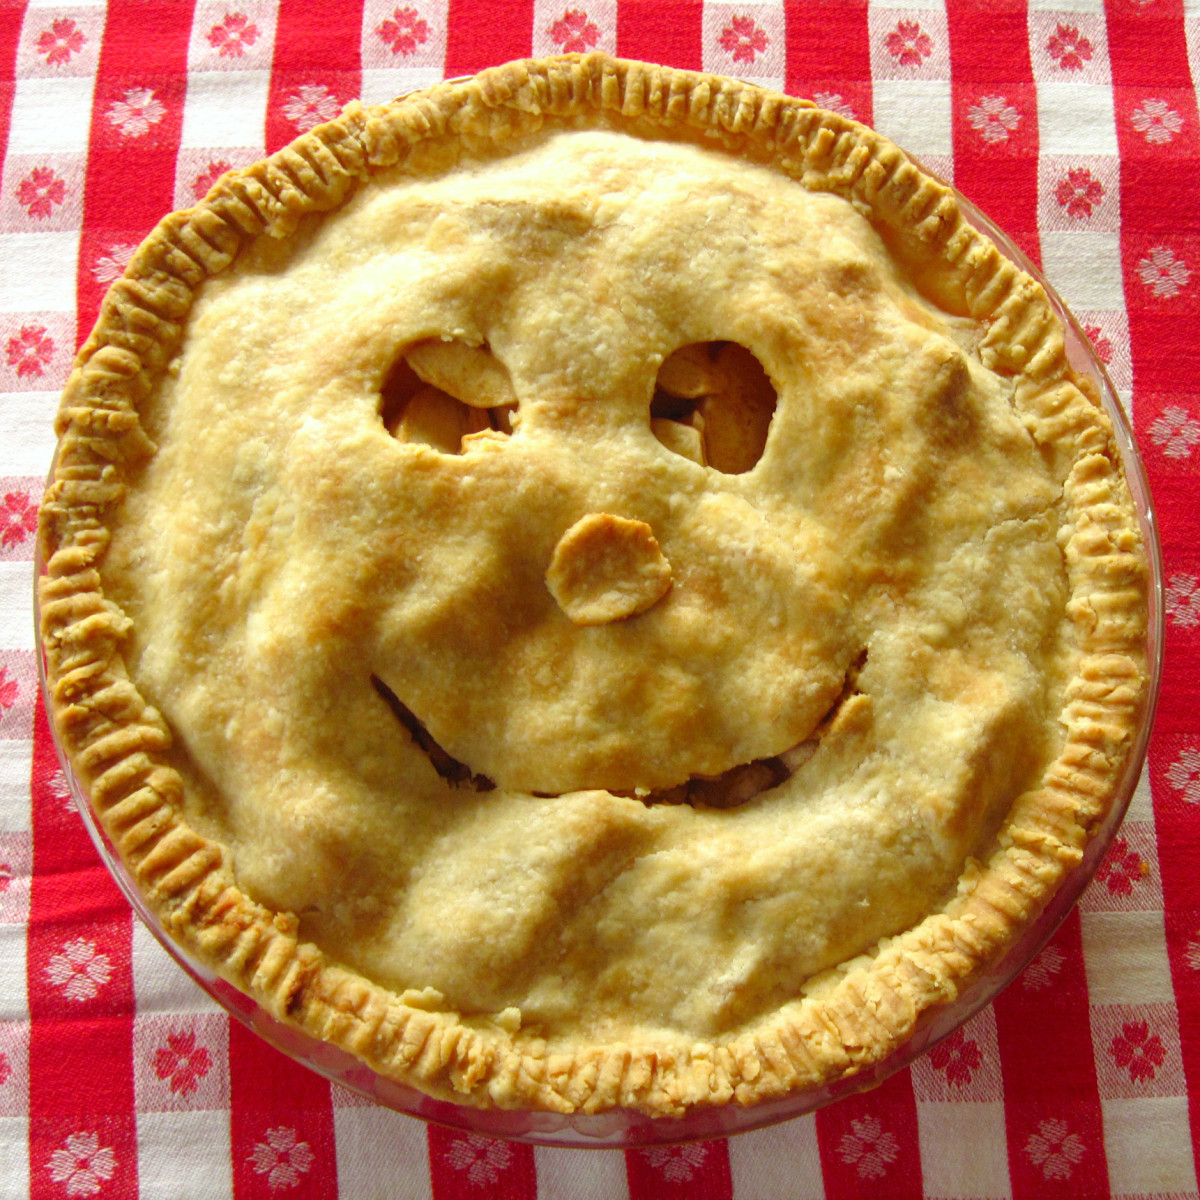 Rhythm and Musical Pie